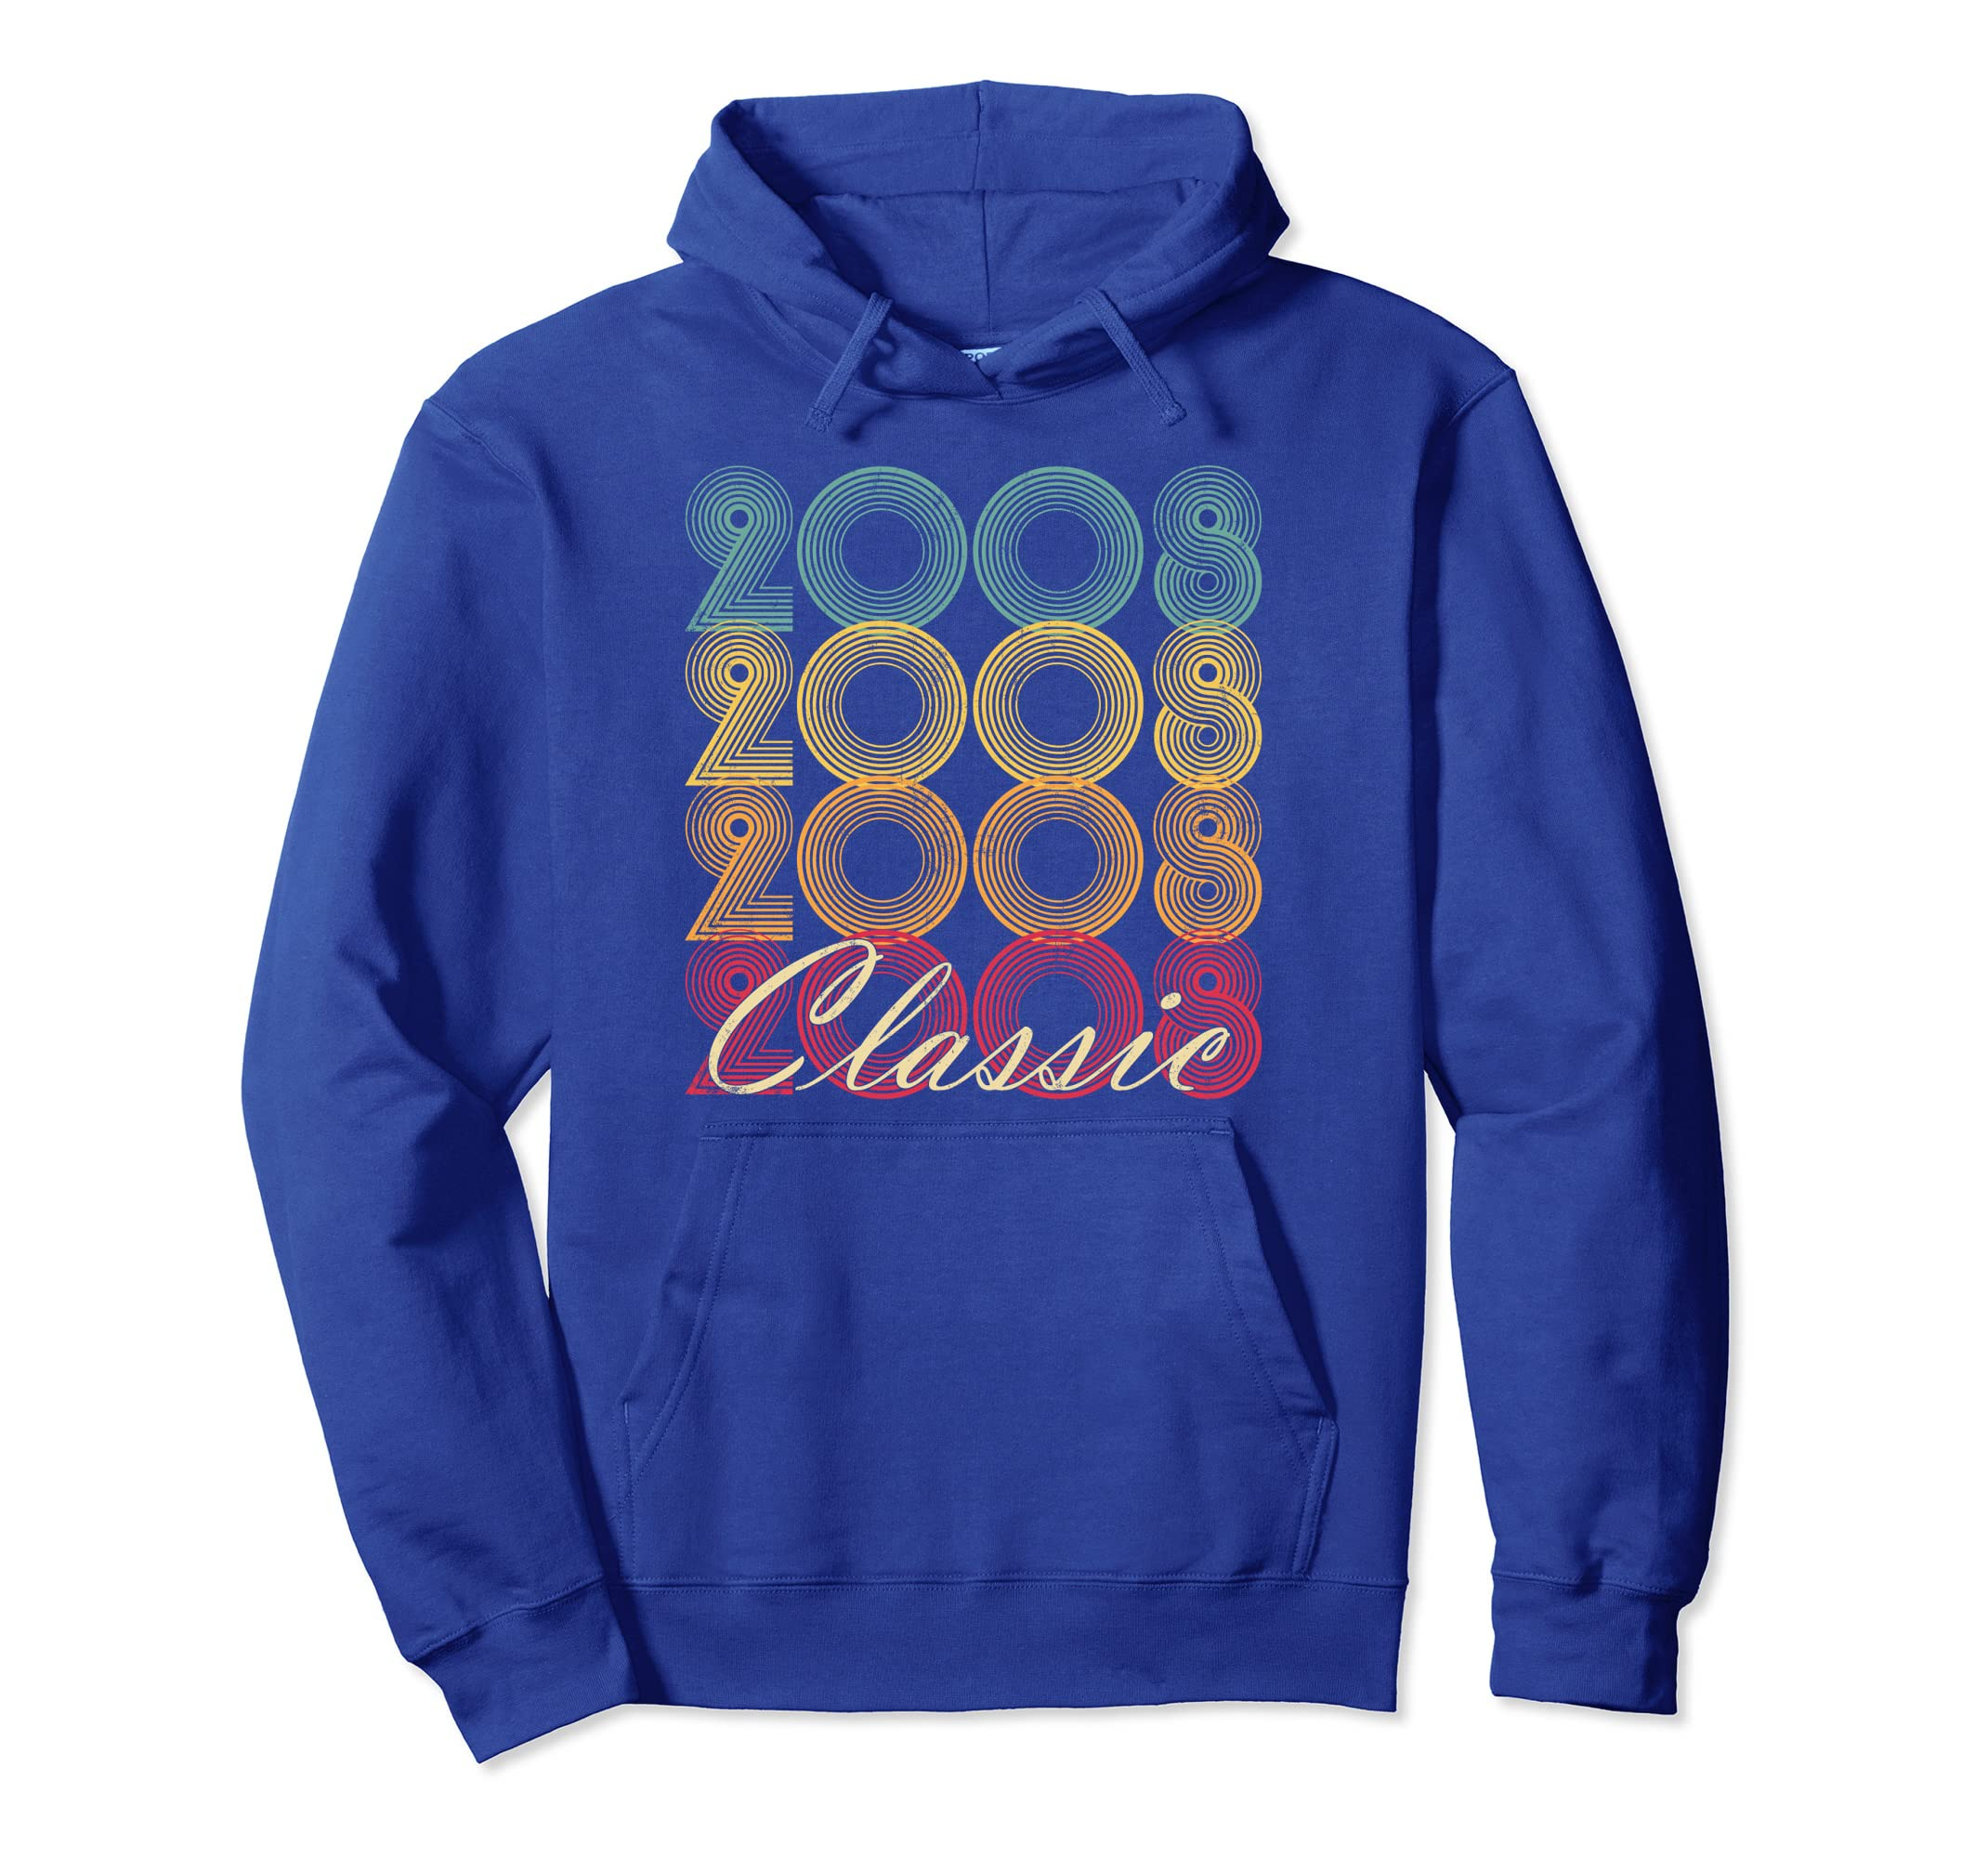 11th Birthday Gift Classic 2008 Hoodie 11 Years Old Vintage-azvn